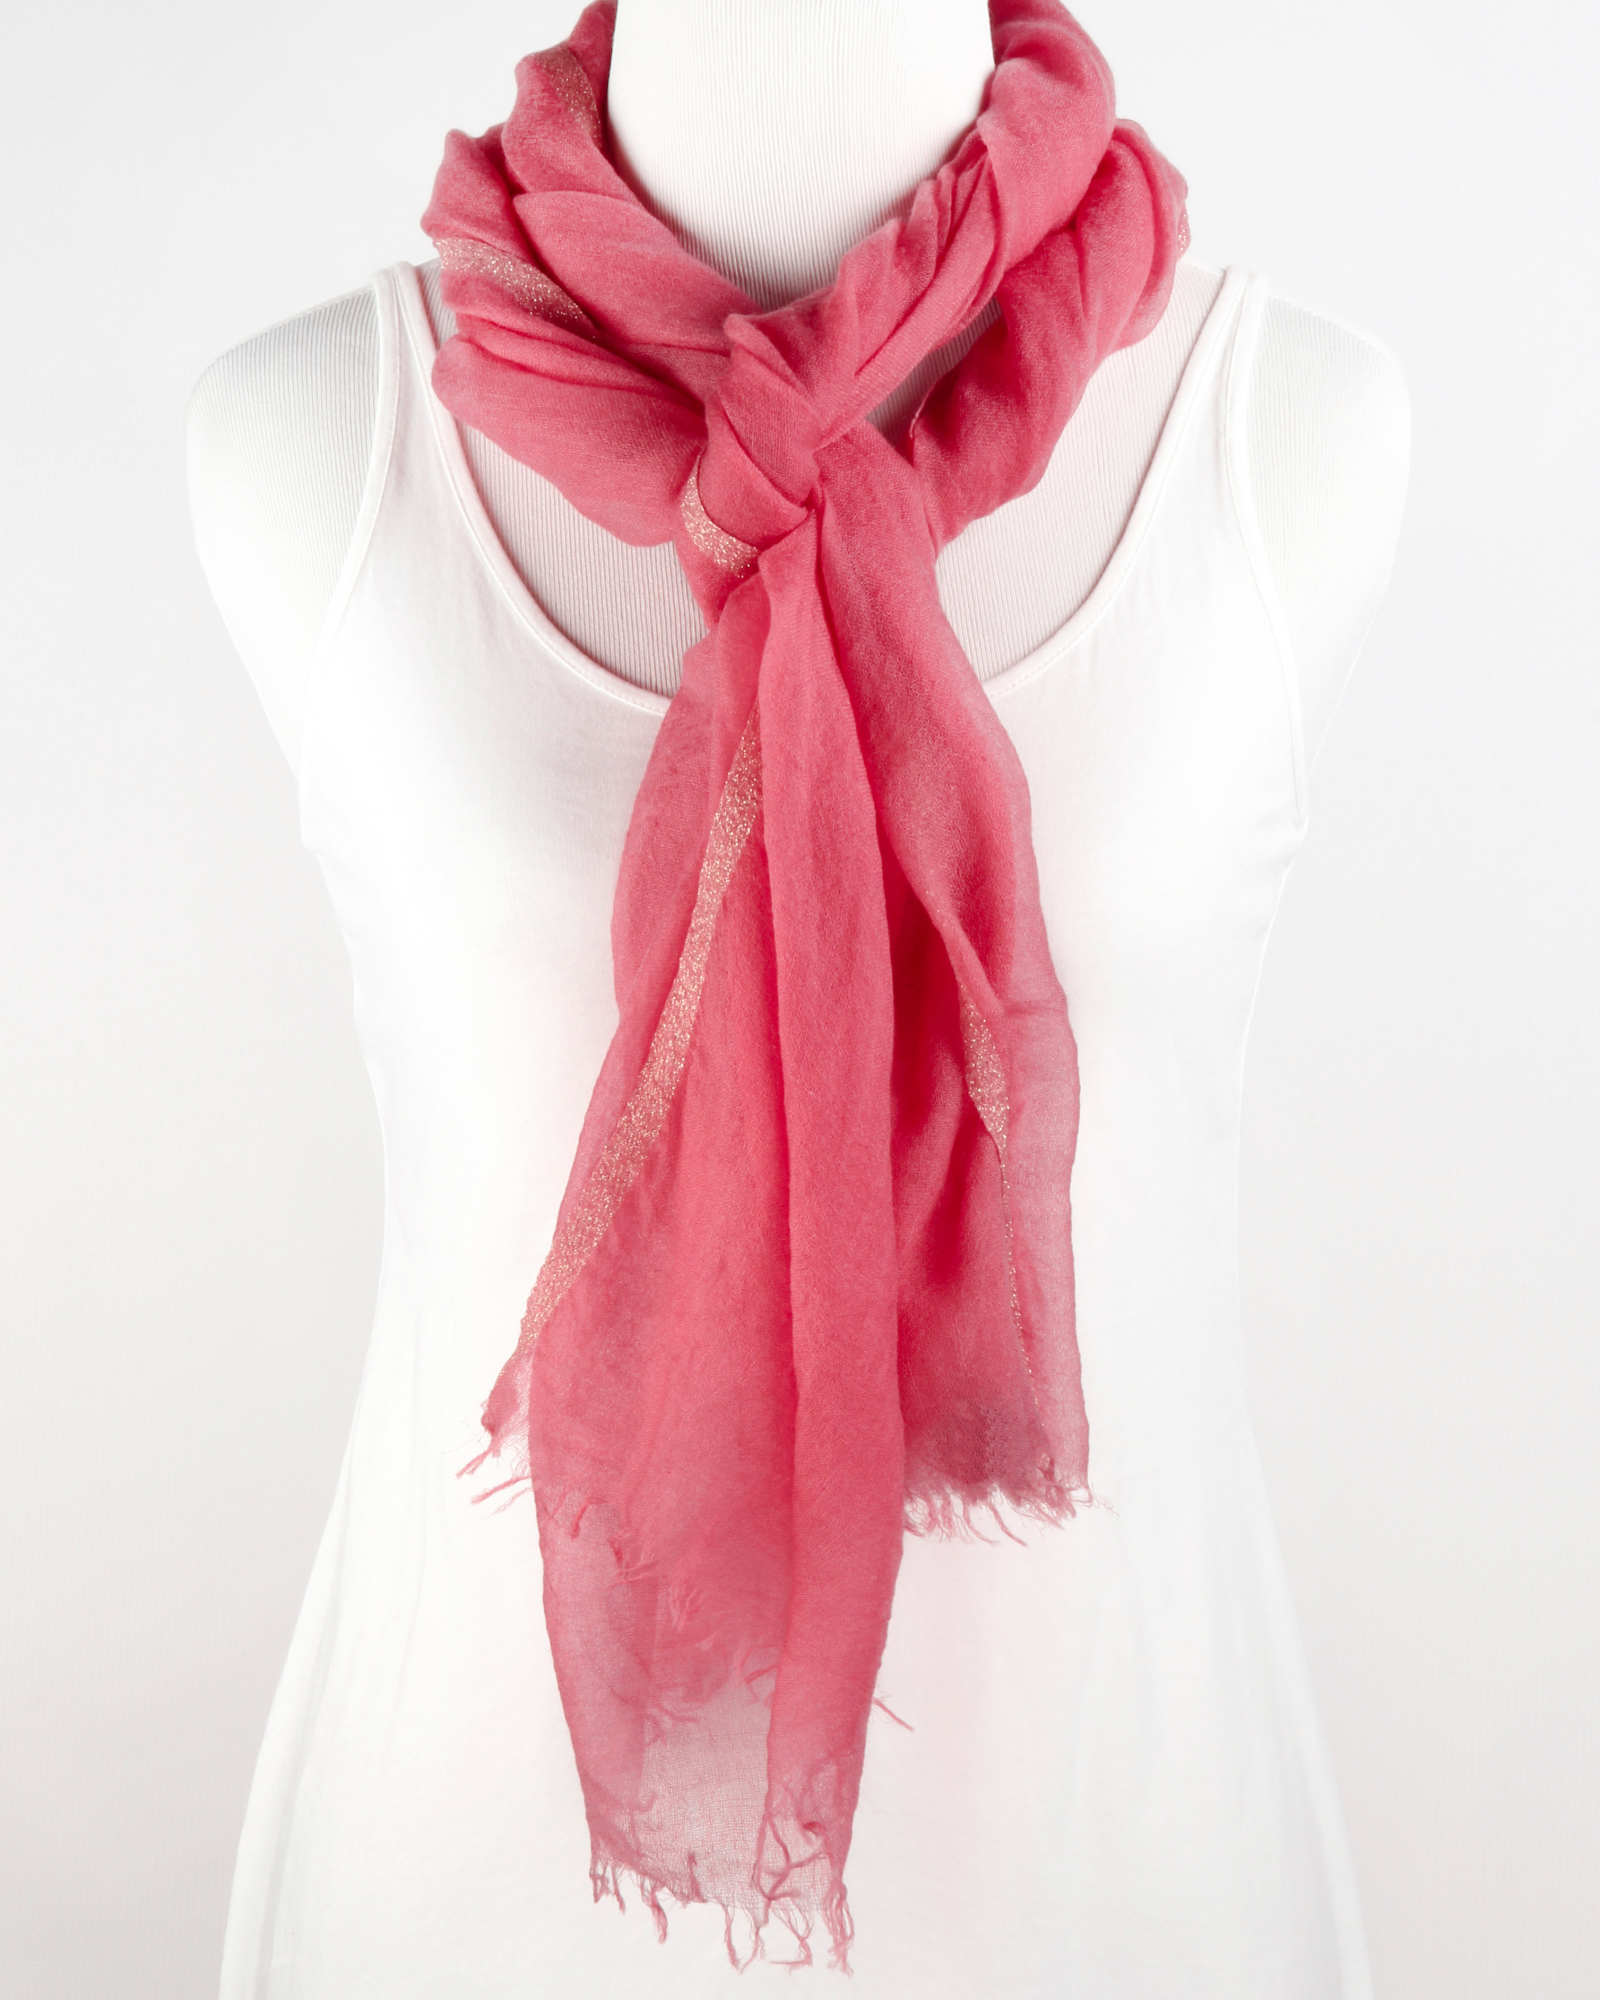 Gauzy Cashmere with Sparkle Edging Scarf